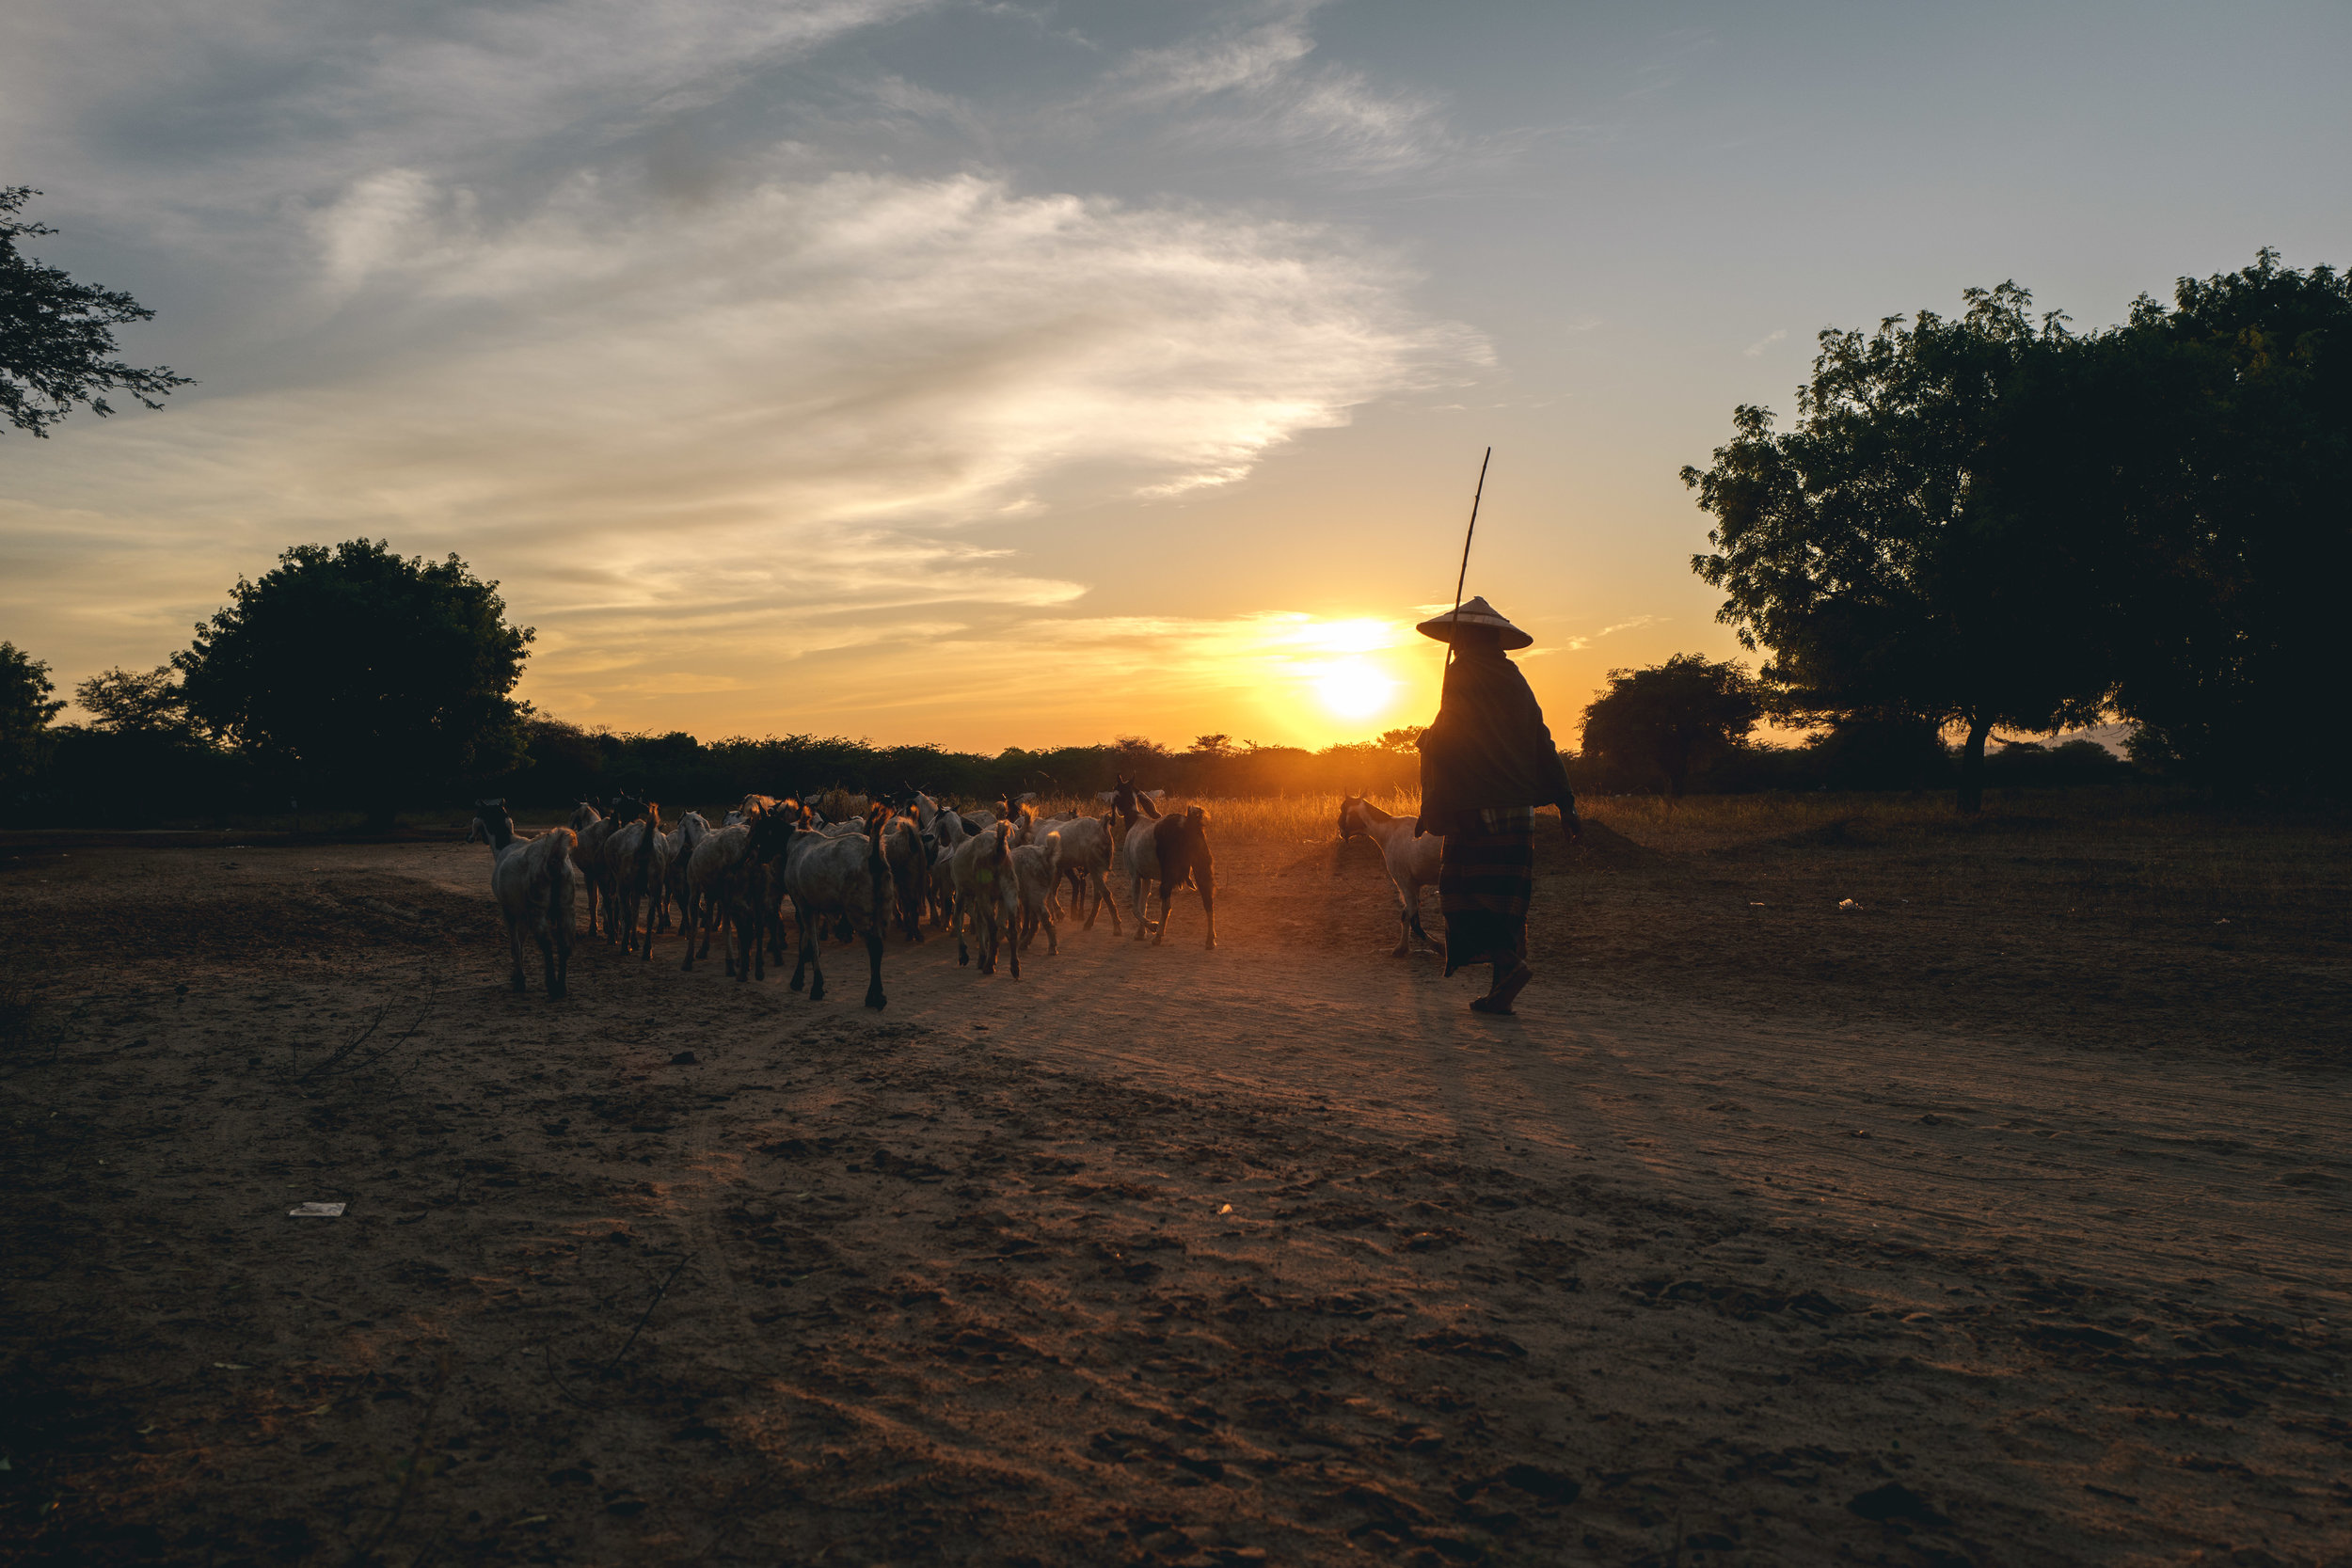 19/20 - Sonnenuntergang in Bagan